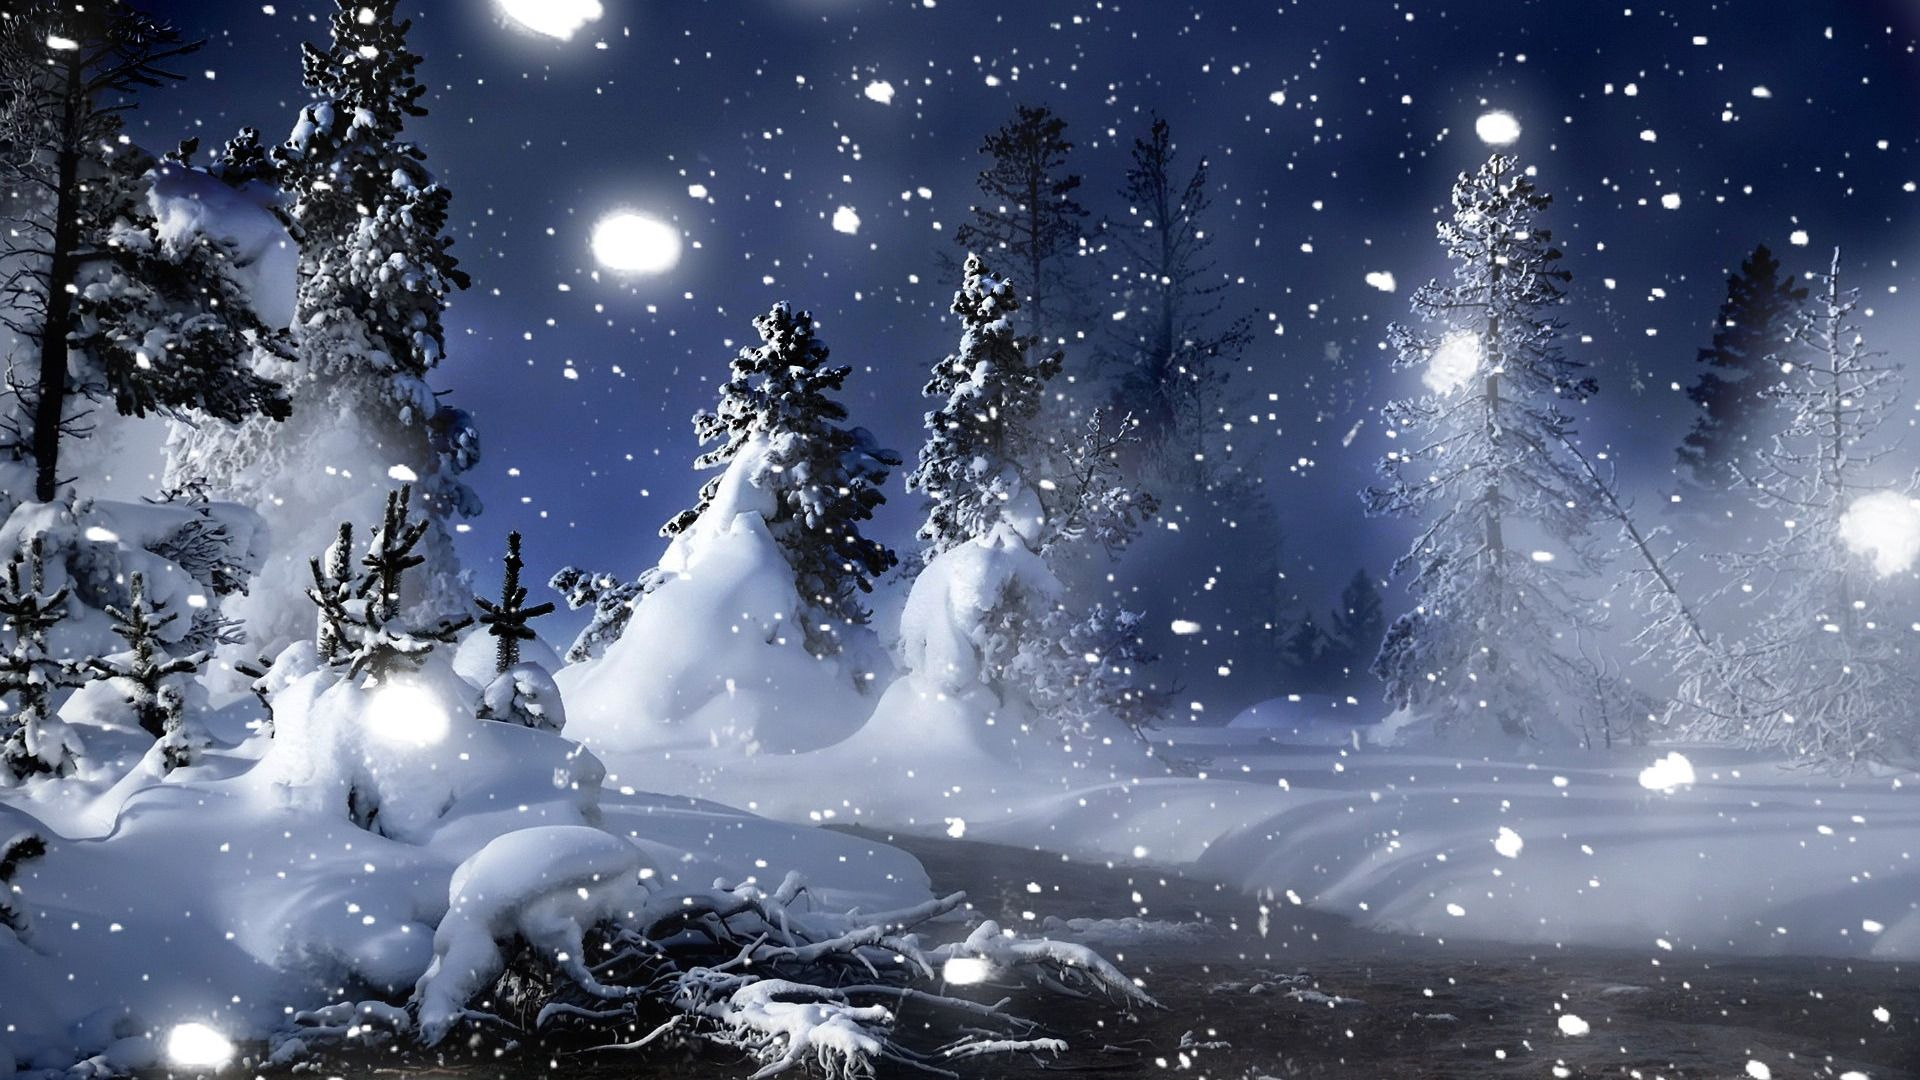 Winter Images Snowy Snow Hd Wallpaper And Background Photos 34209346